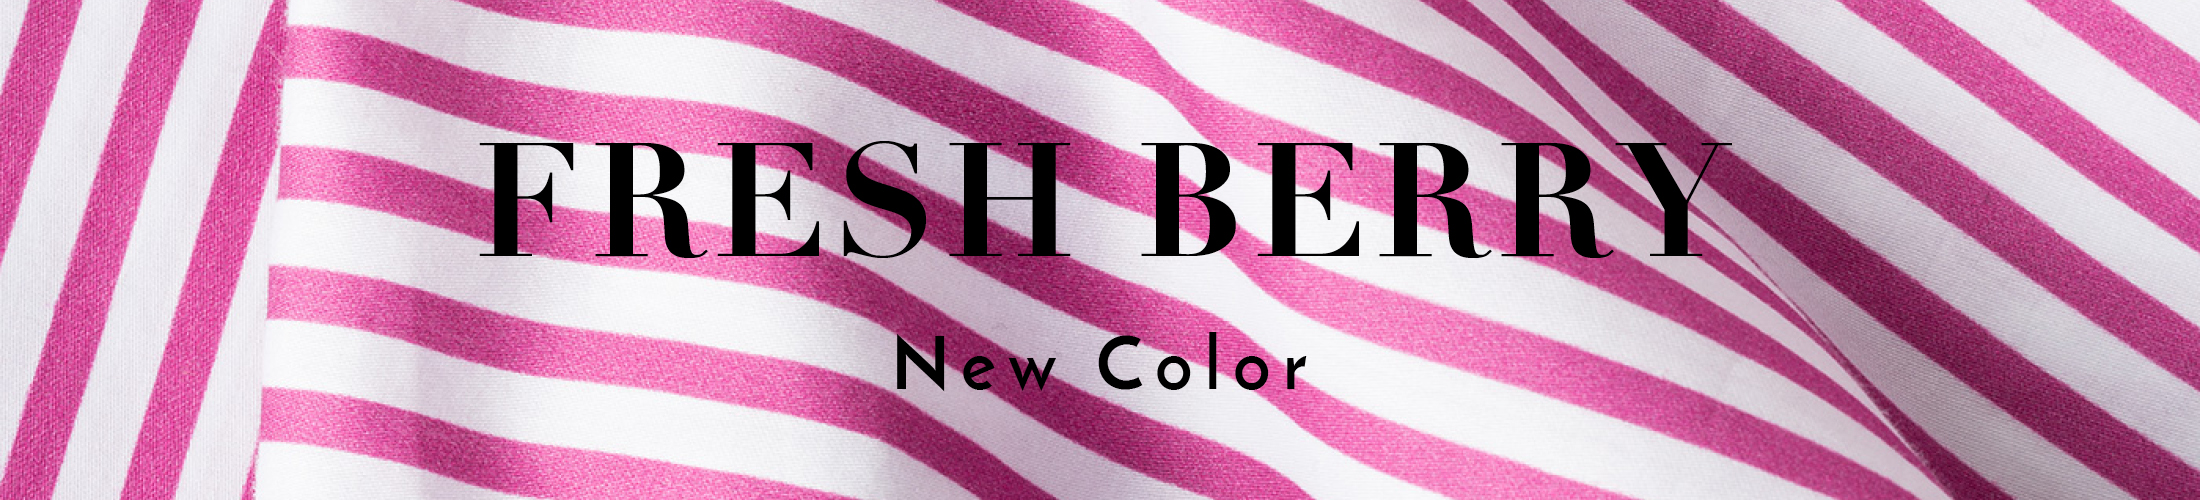 New Color Berry